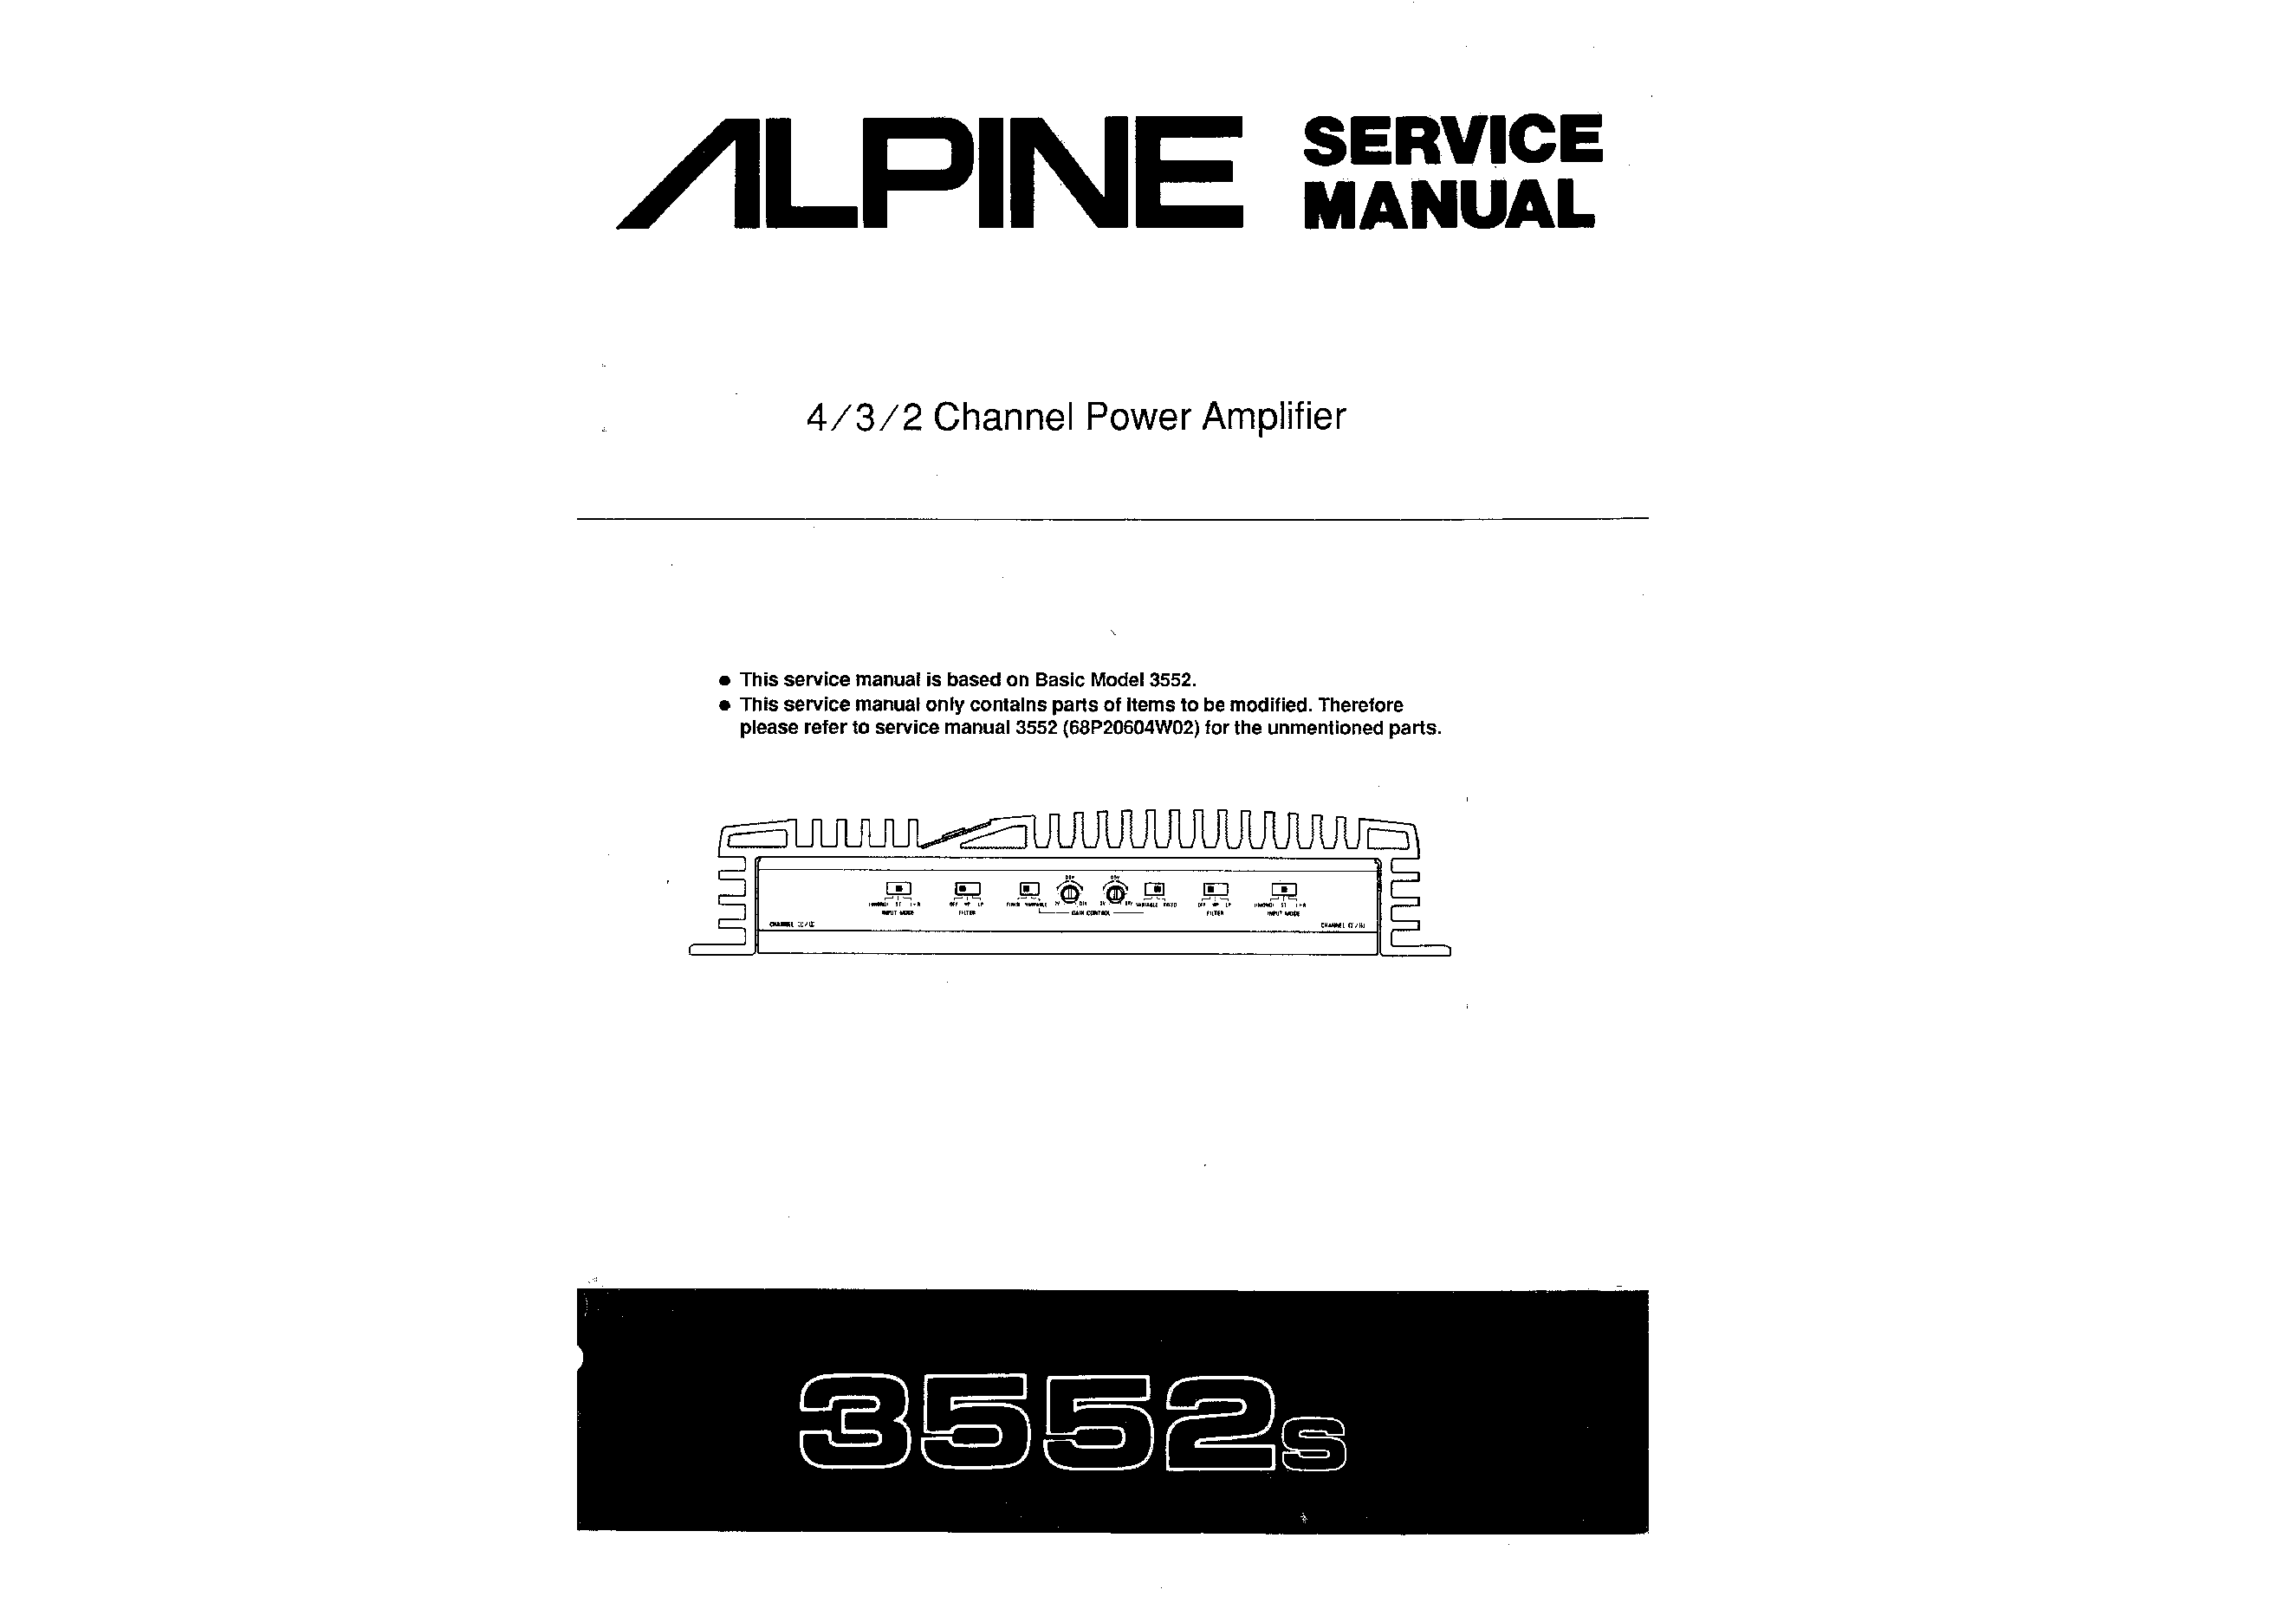 alpine 3552s service manual immediate download rh manualscenter com FTB 3552 IRS Form 3552